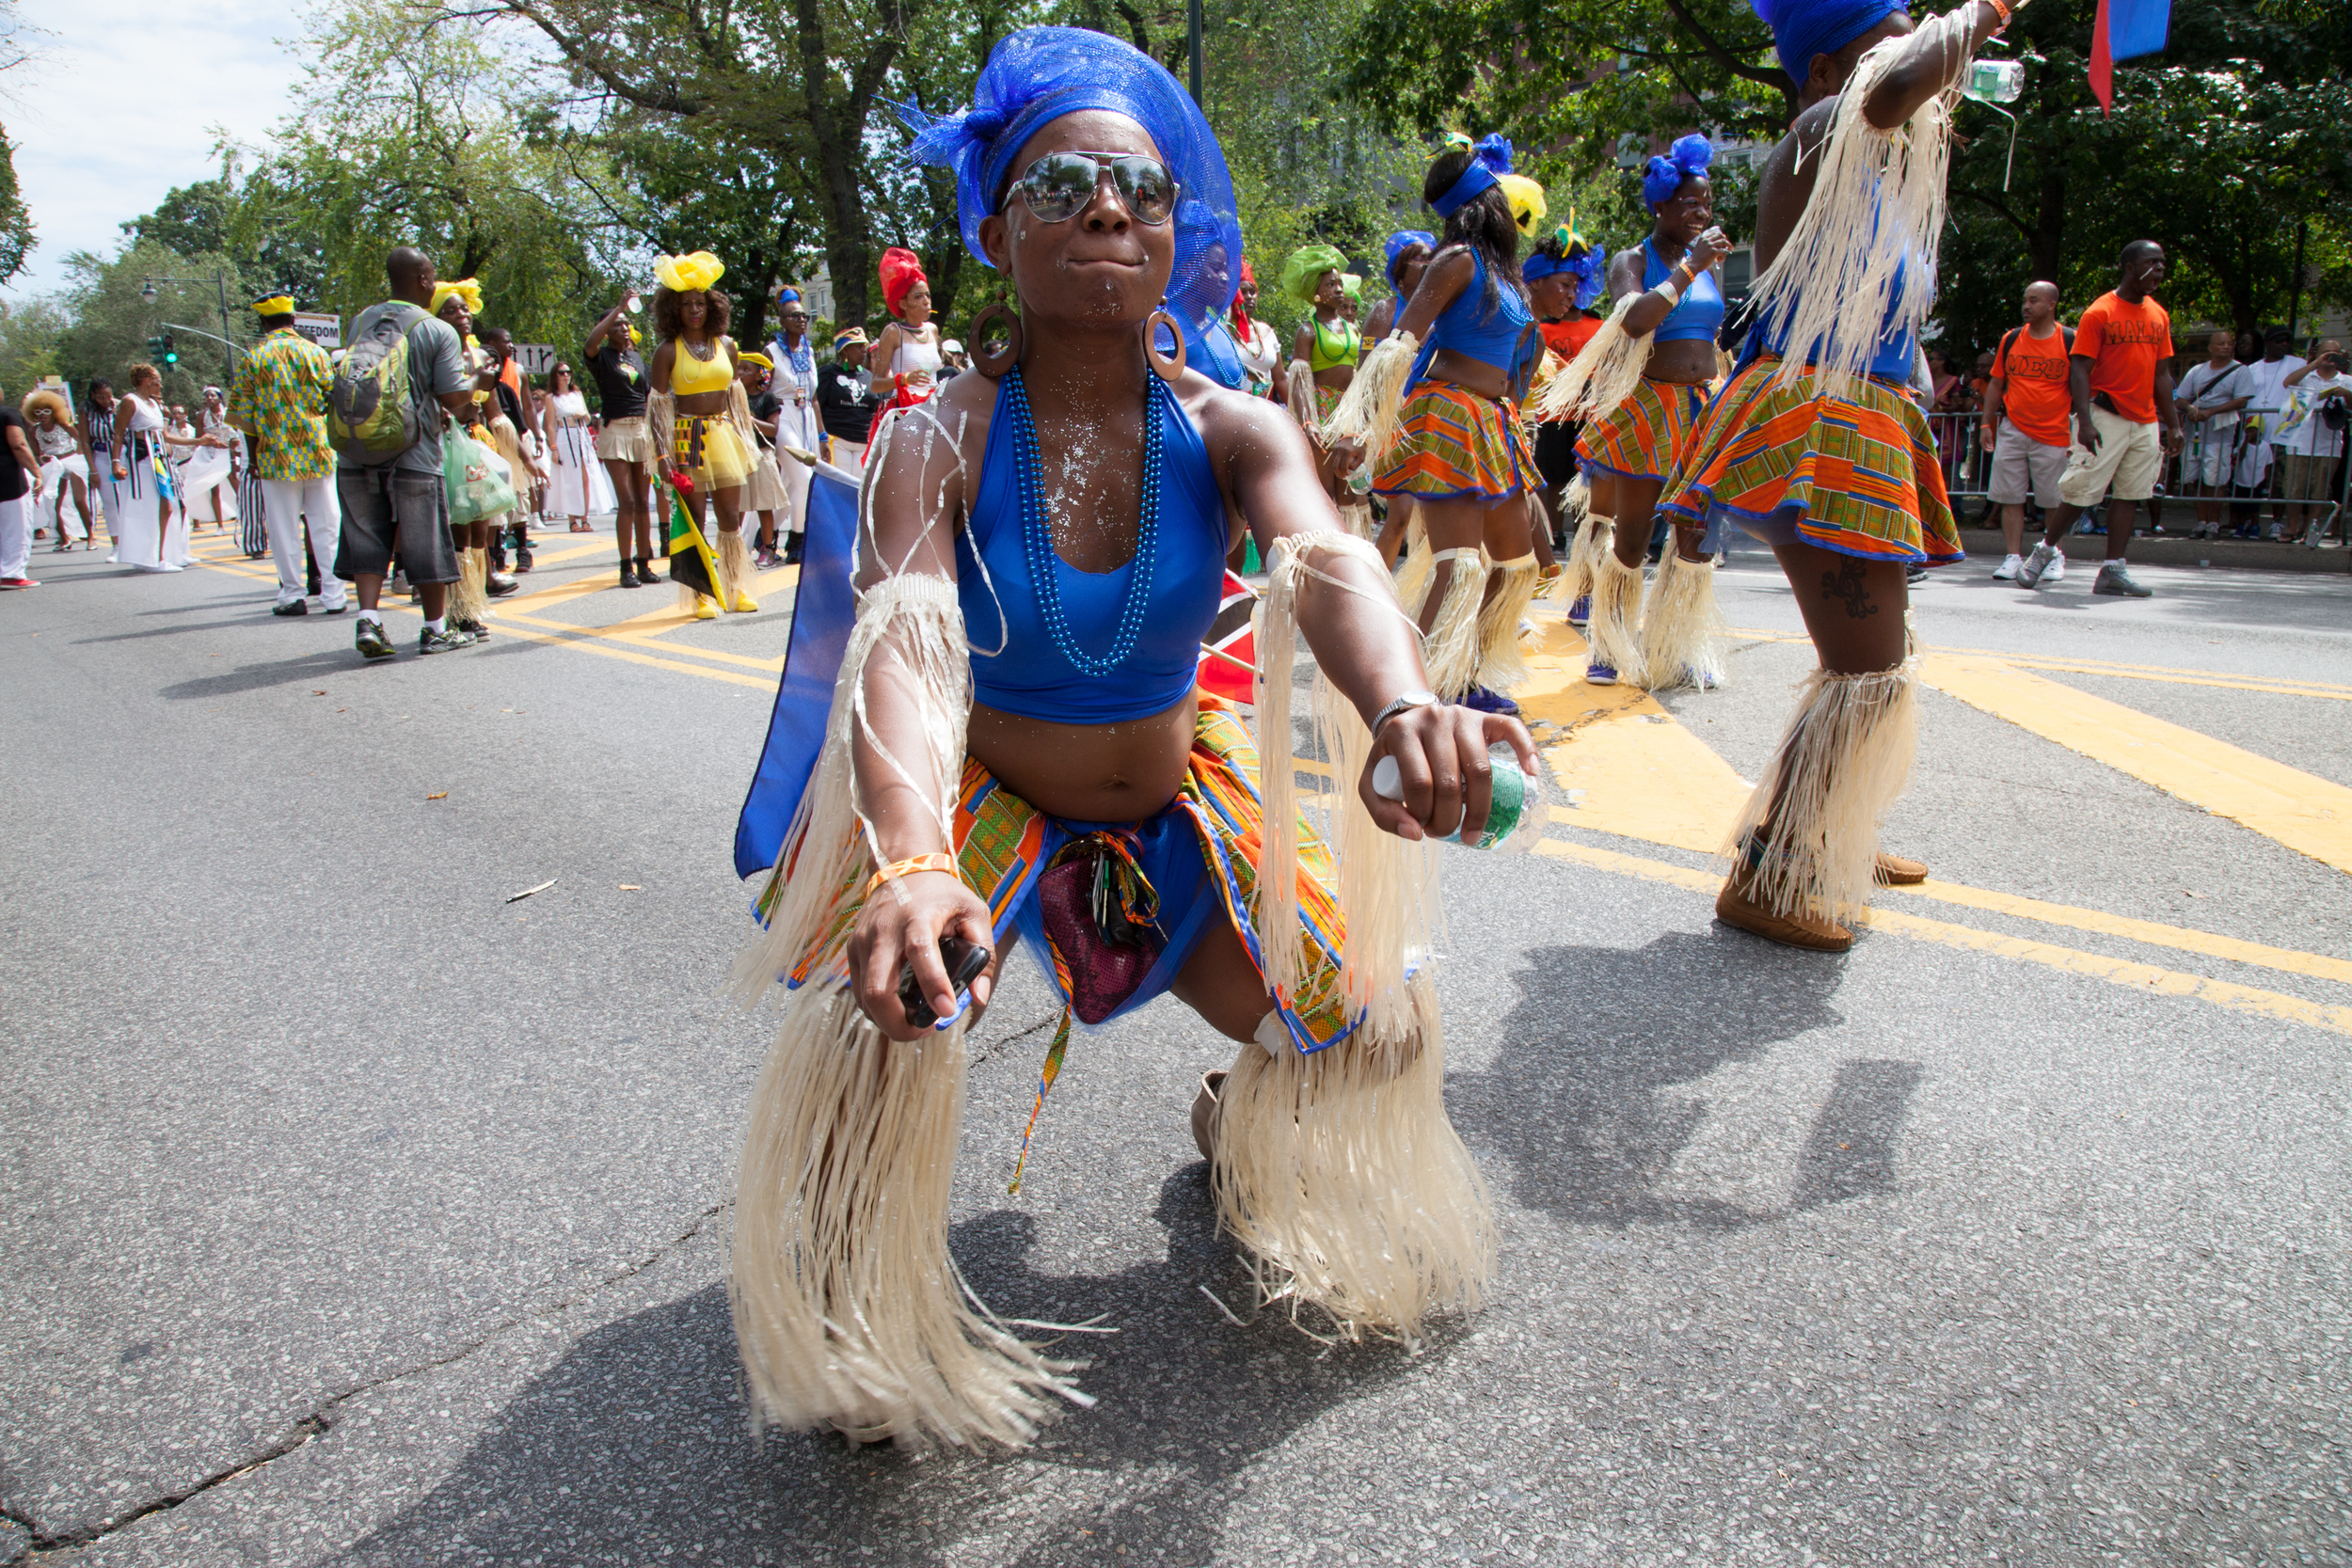 West Indian Parade NYC, sept 1, 2014